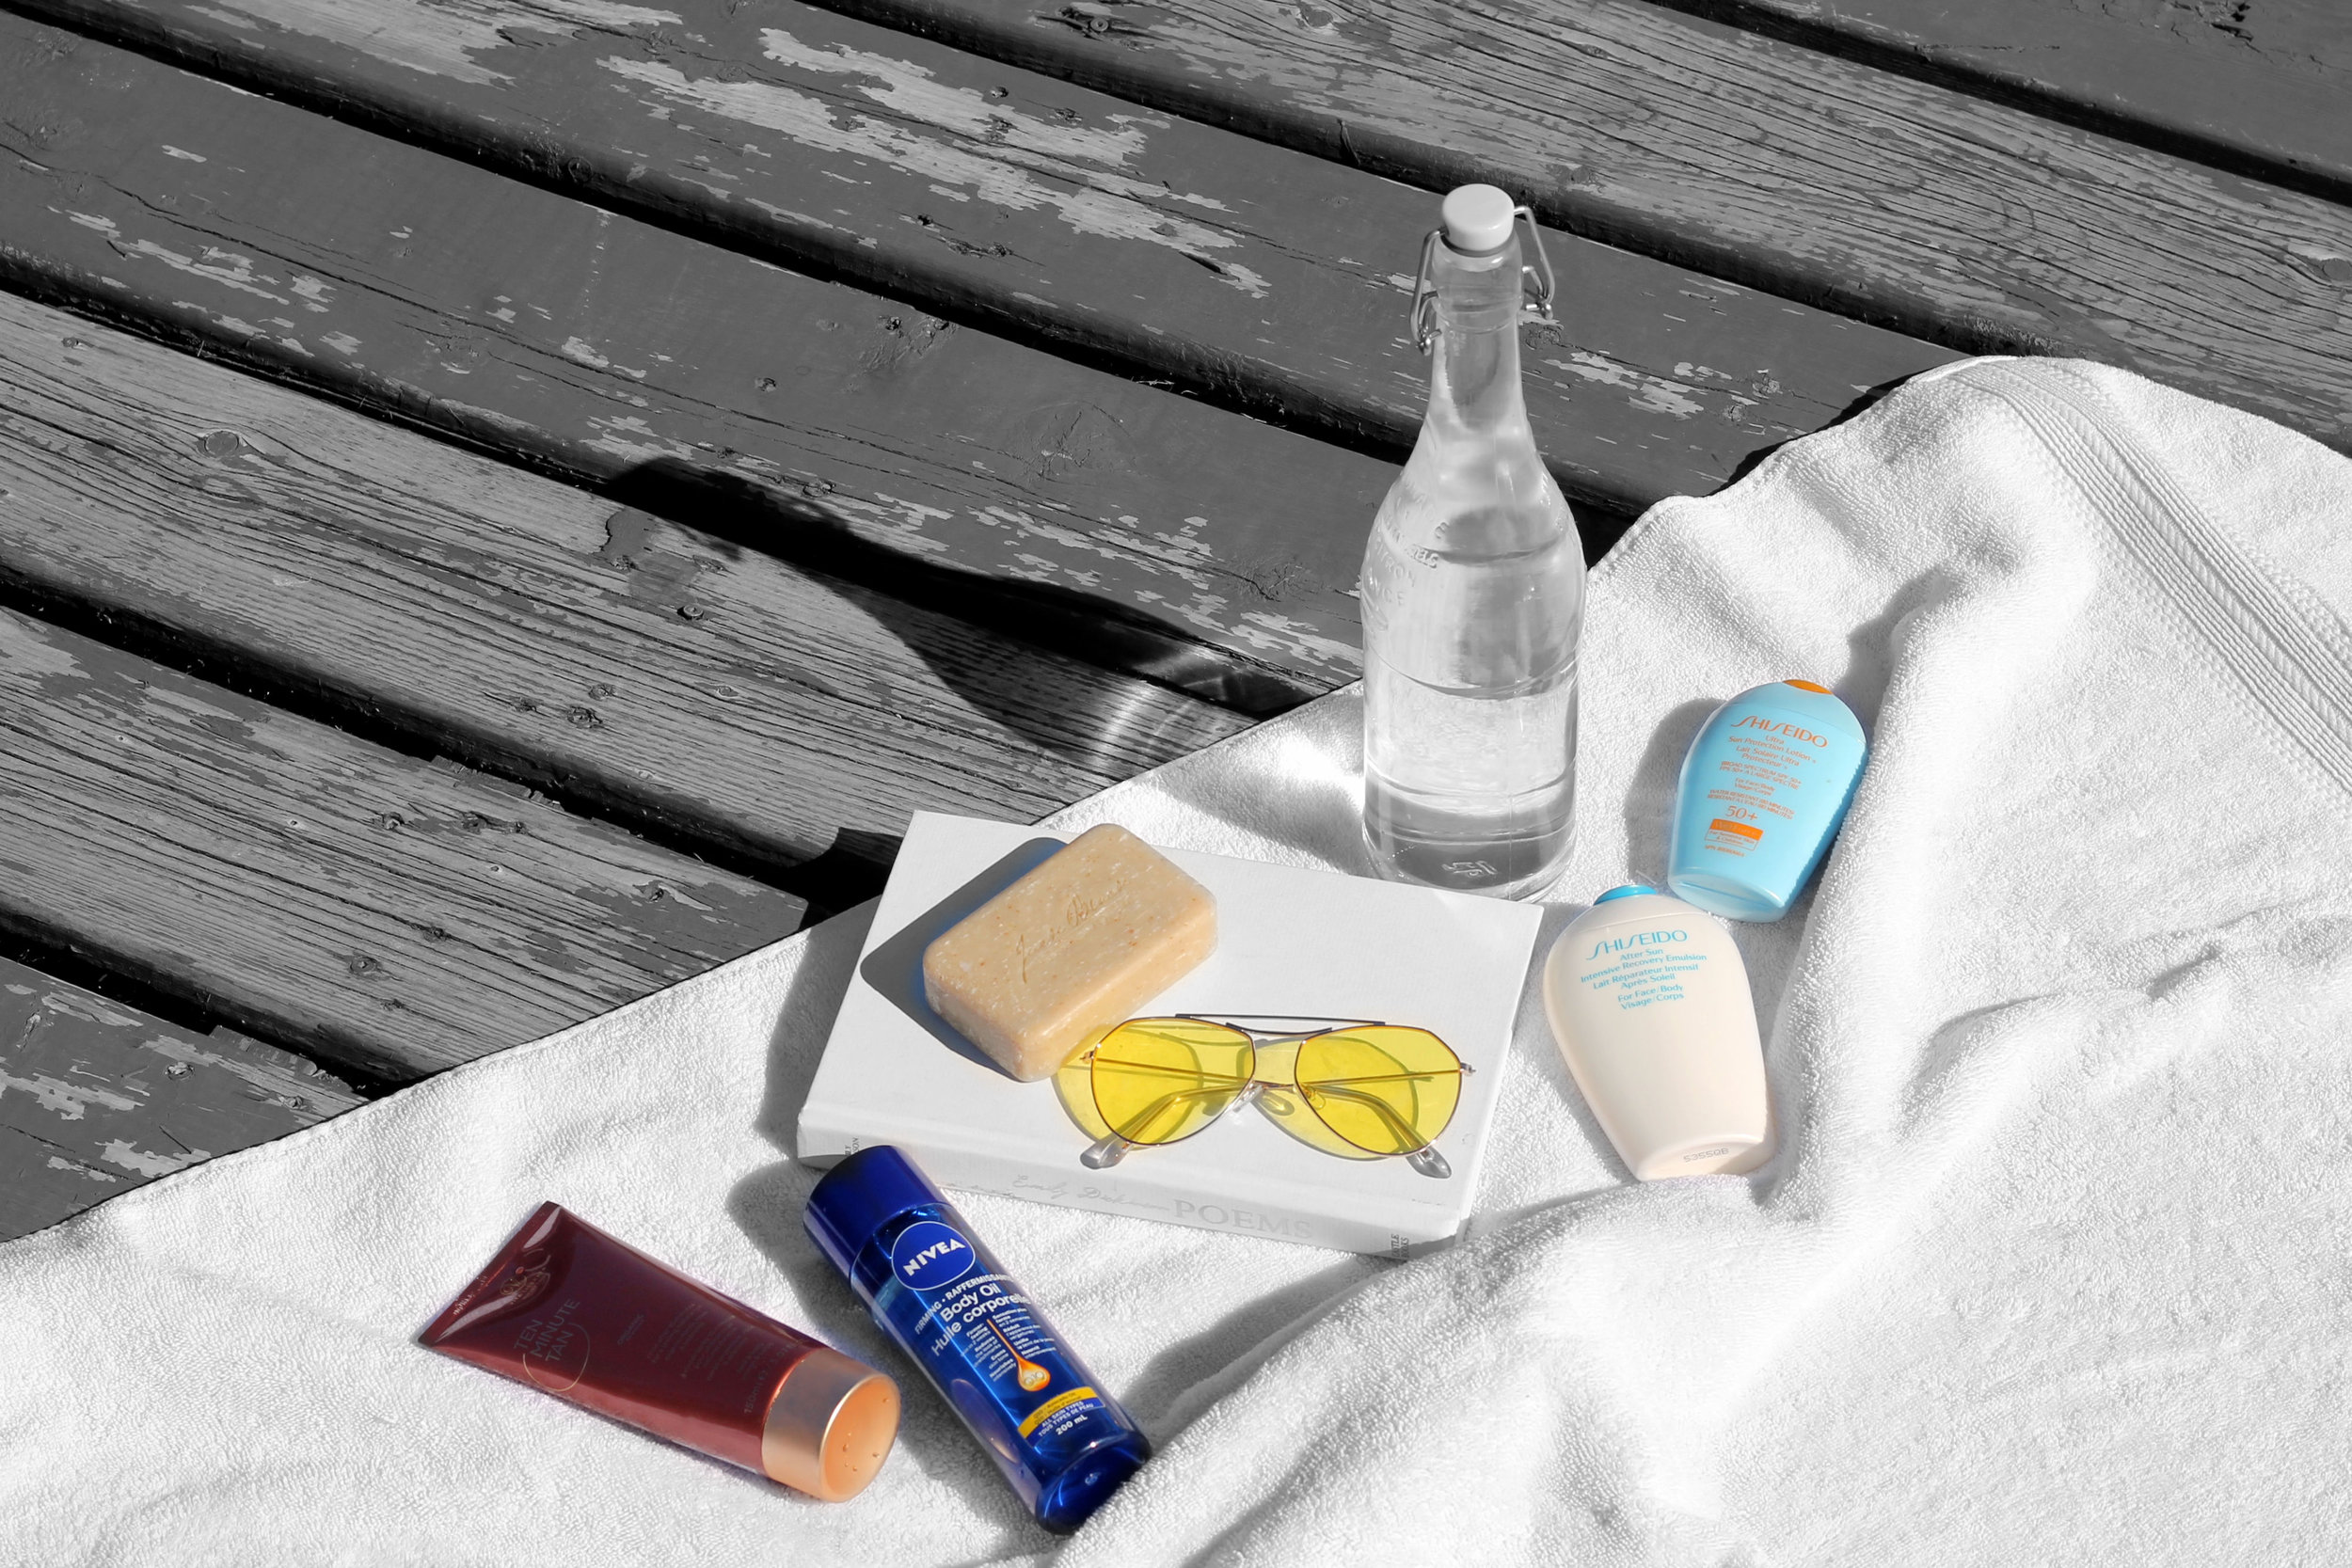 Best Products To Achieve and Maintain a Summer Tan including Vita Liberate Ten Minute Tan, Nivea Q10 Firming Body Oil, Shiseido After Sun, Sunscreen and Jack Black Turbo Body Bar